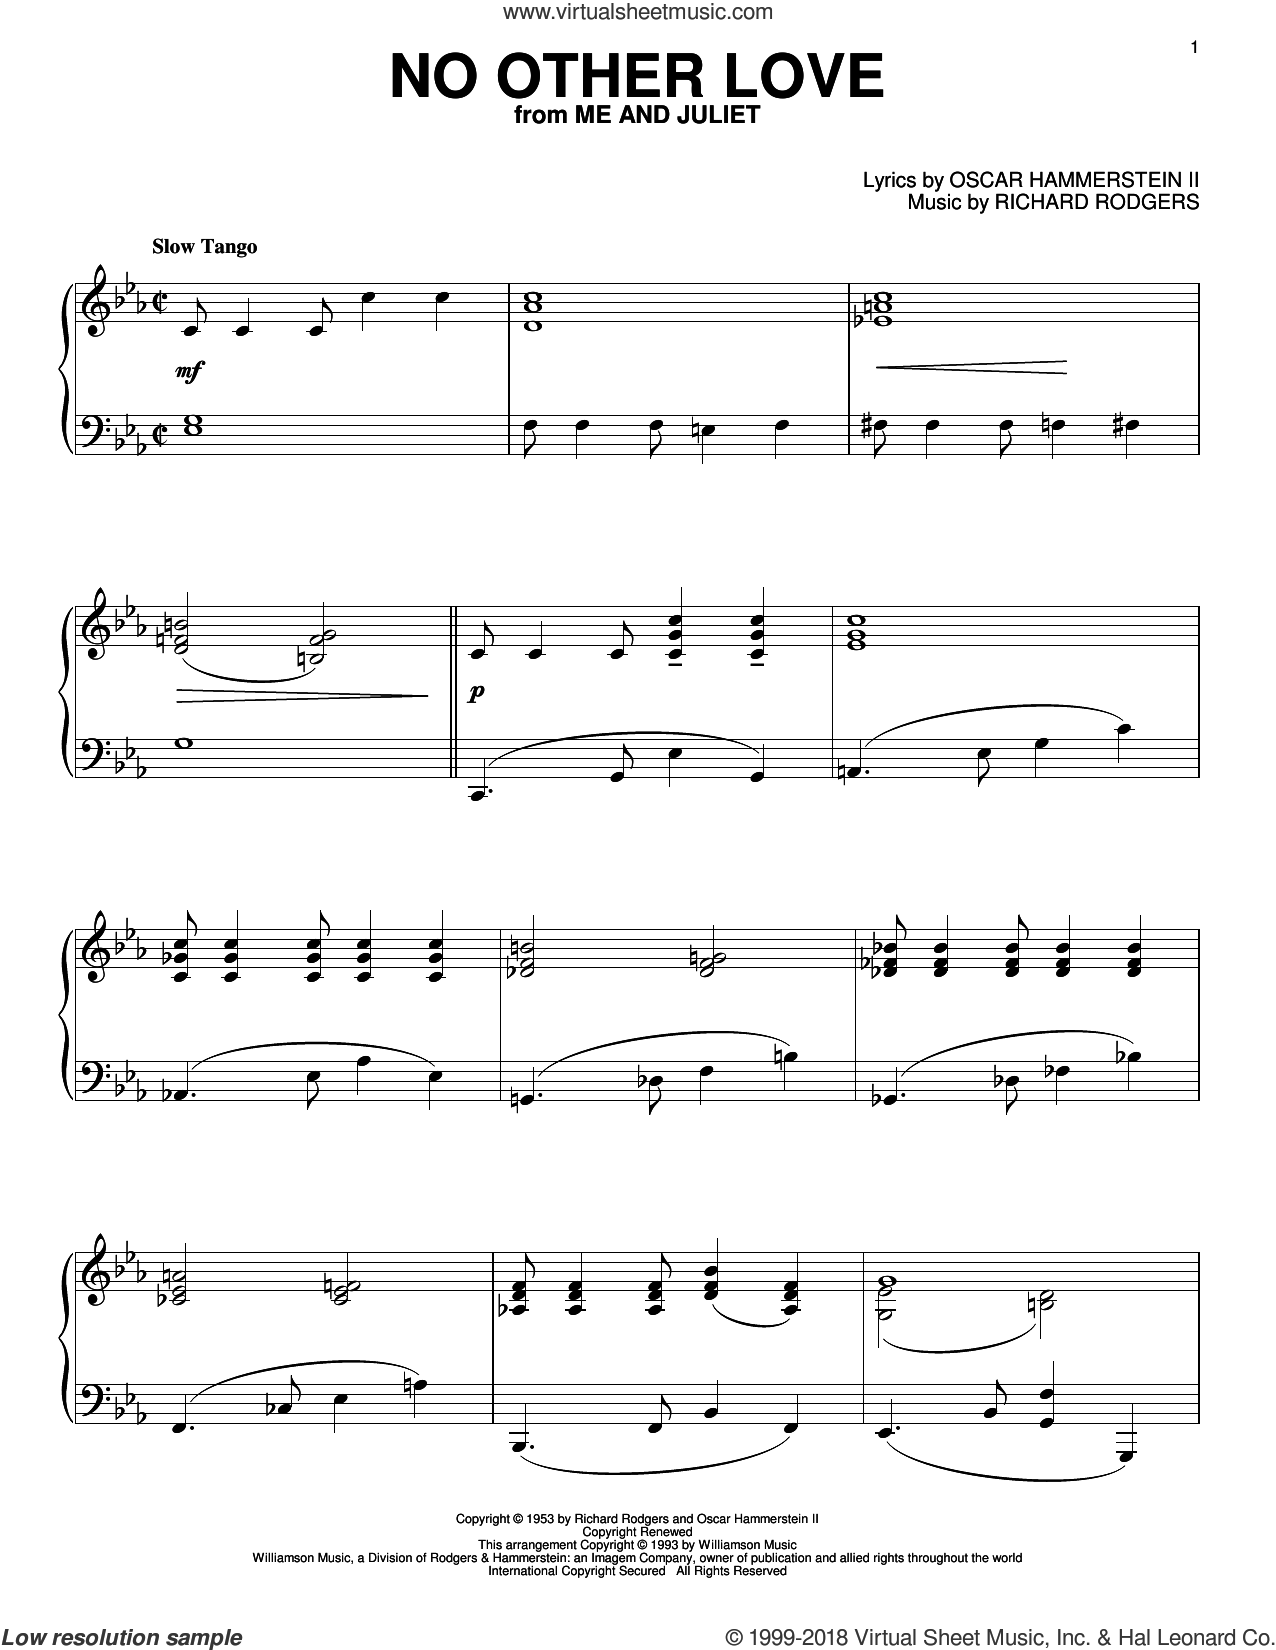 No Other Love sheet music for piano solo by Rodgers & Hammerstein, Oscar II Hammerstein and Richard Rodgers, intermediate skill level